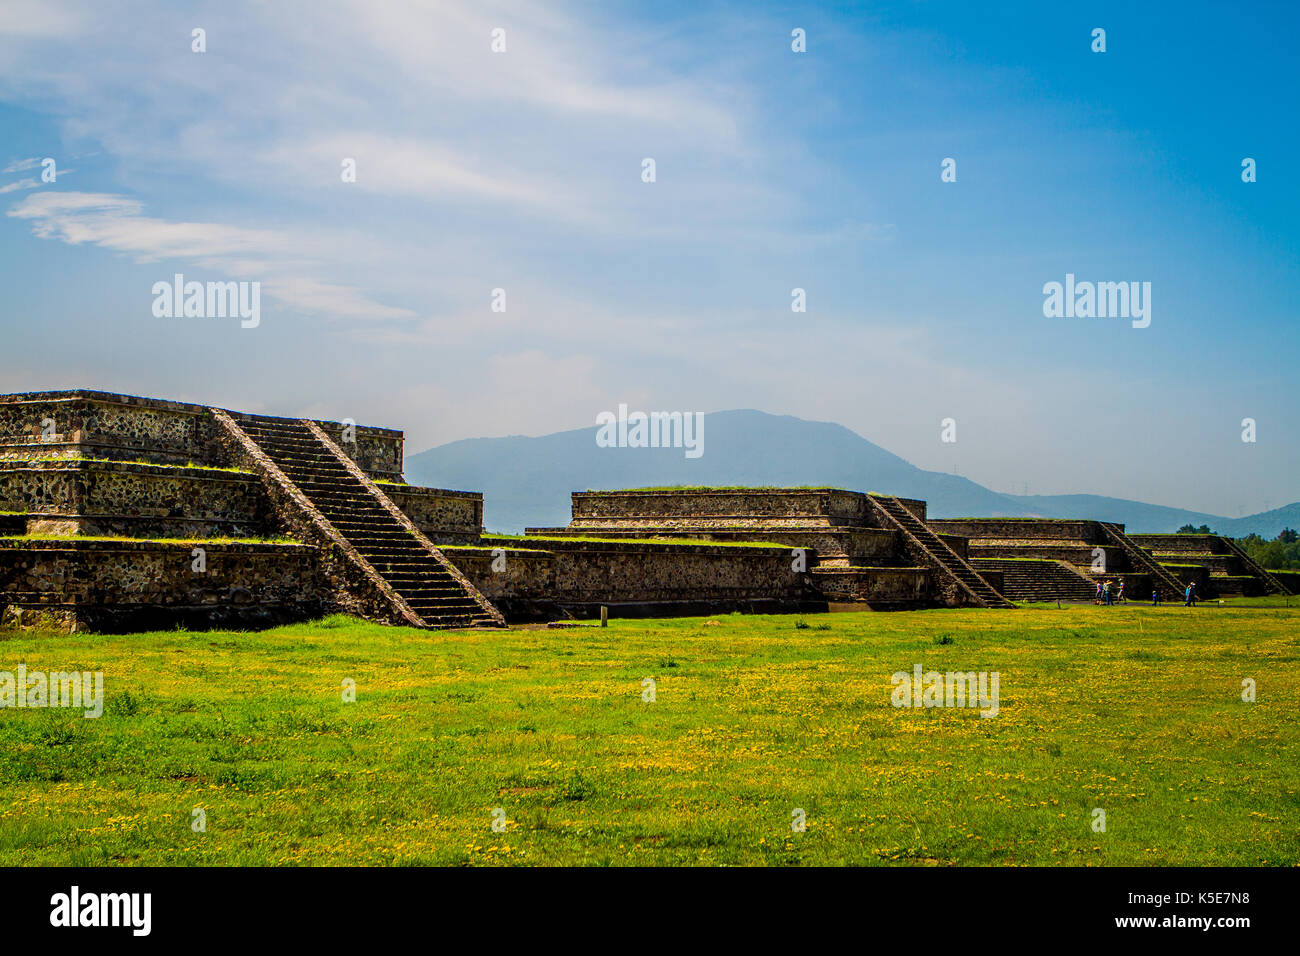 Pyramids along the Avenue of the Dead, Teotihuacan, Mexico - Stock Image